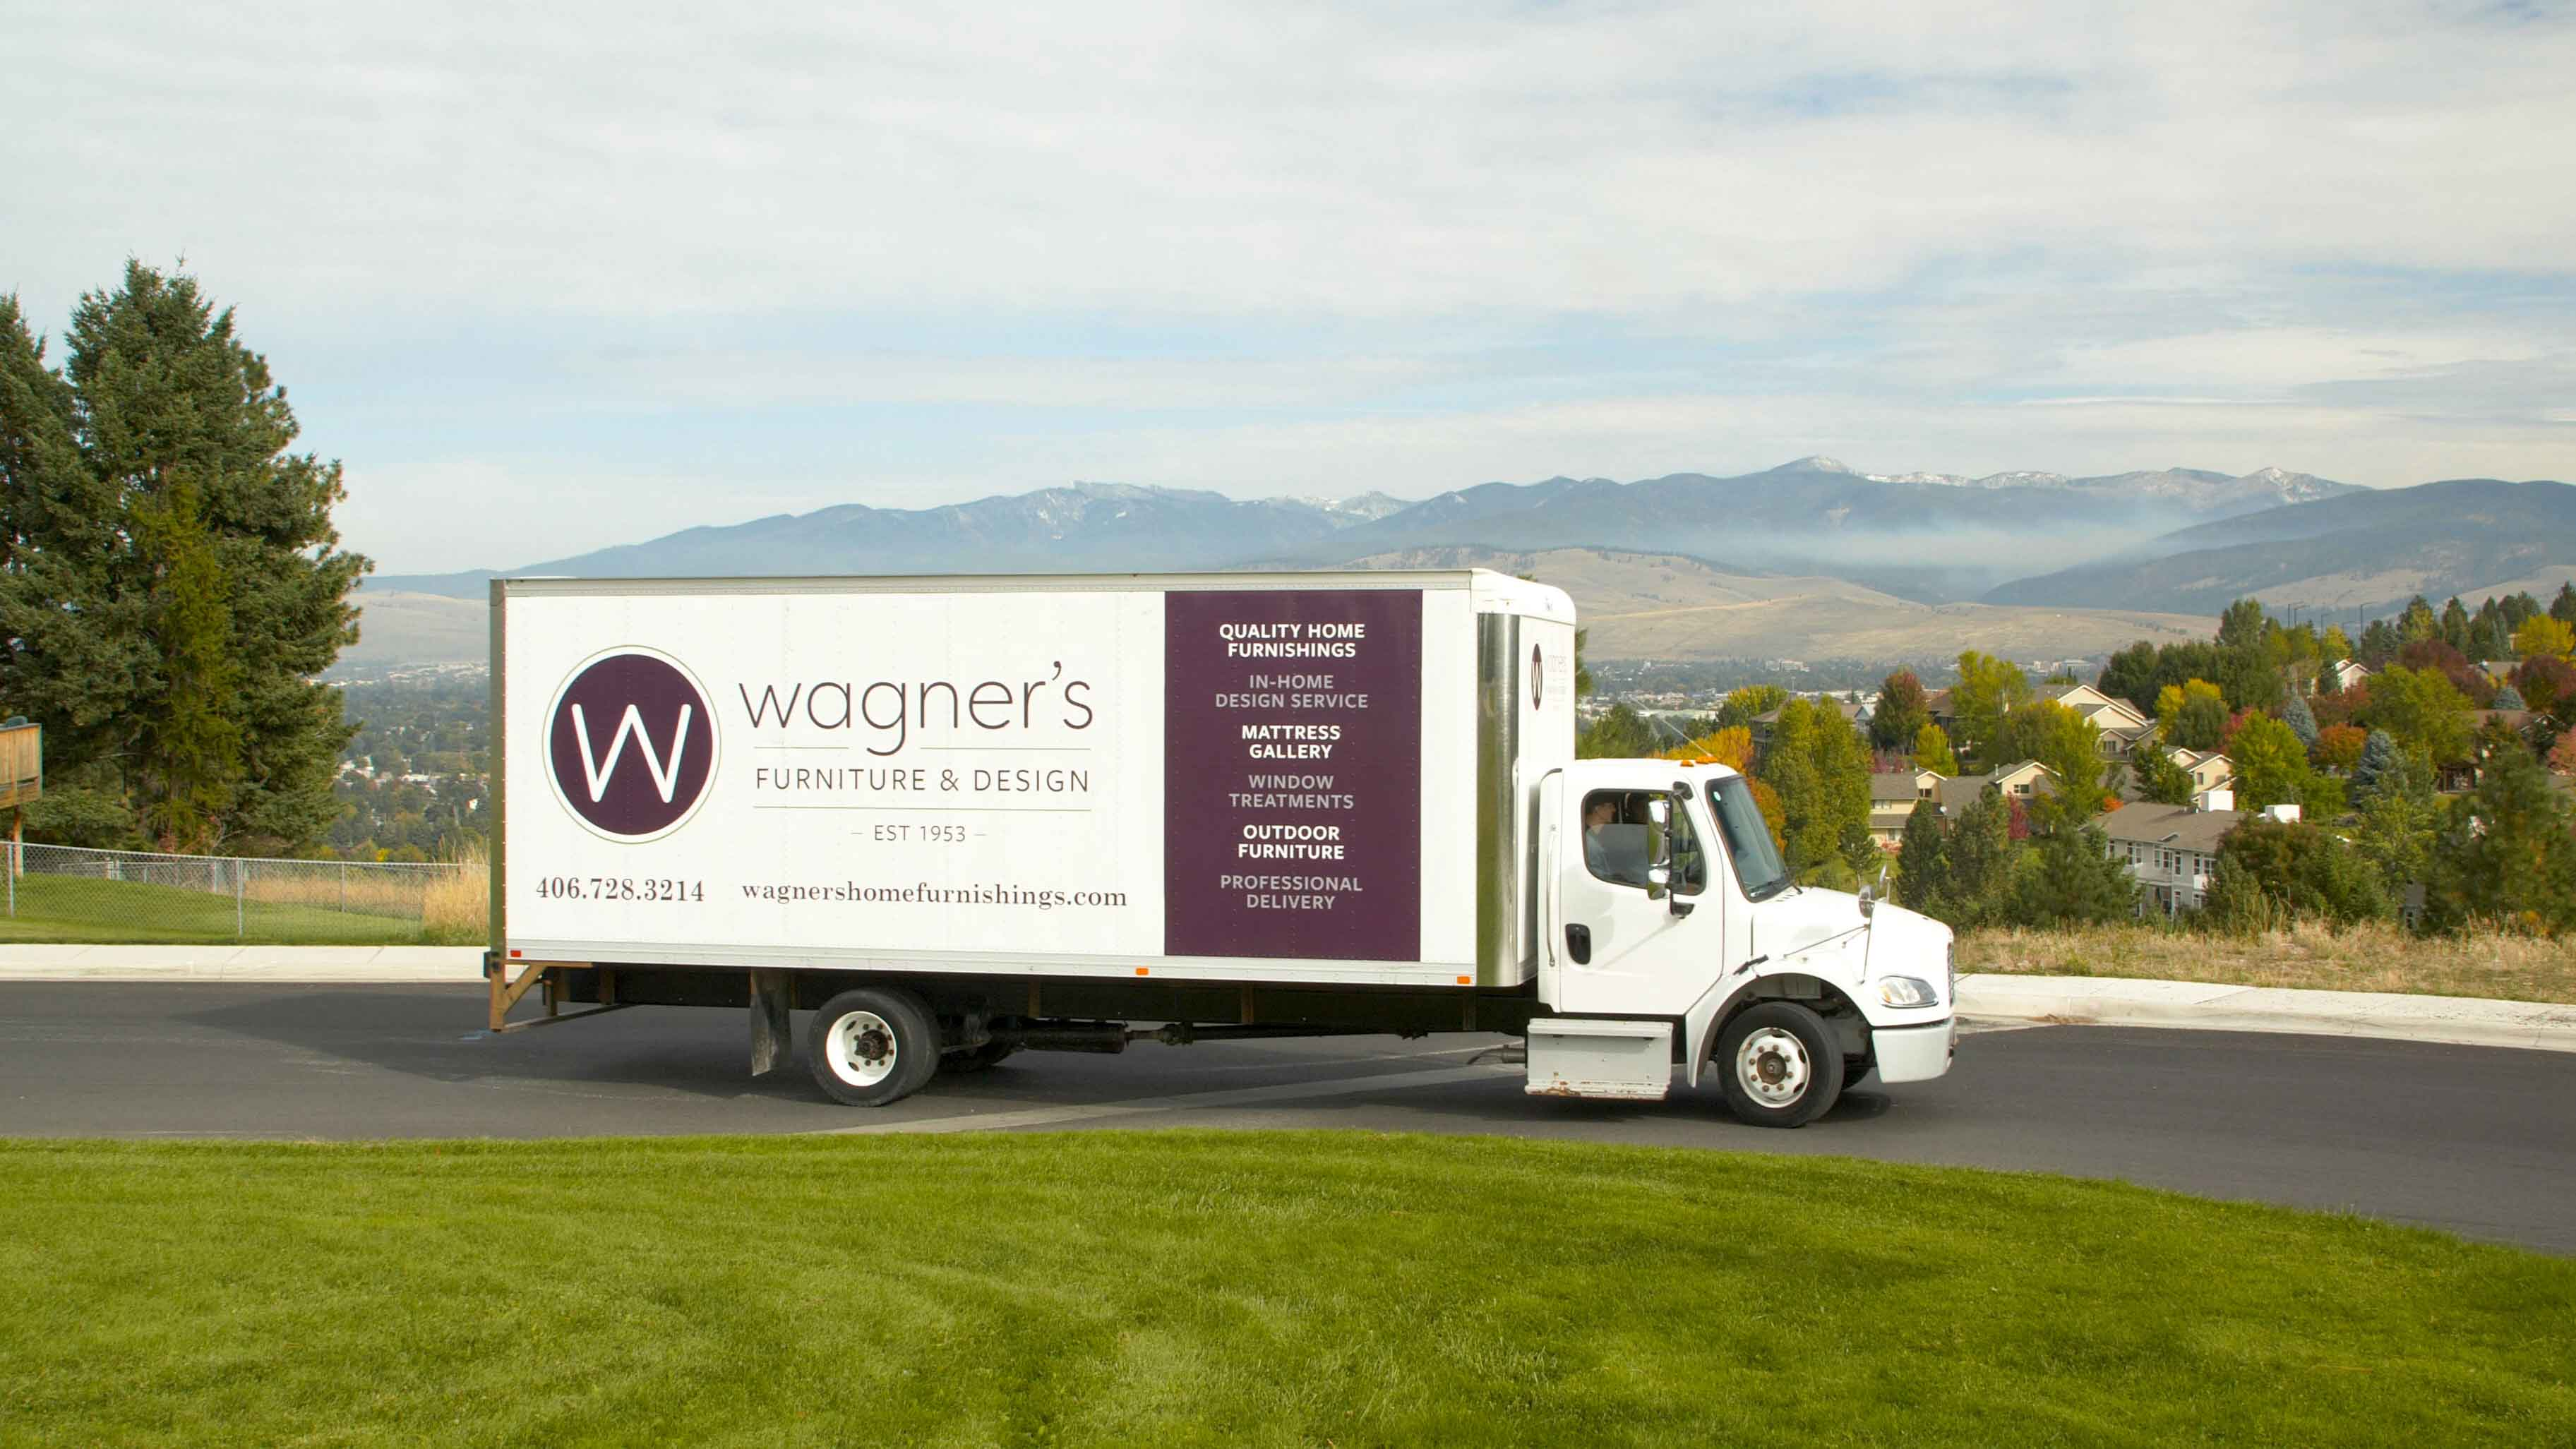 Wagner's delivery truck parked in front of scenic overlook